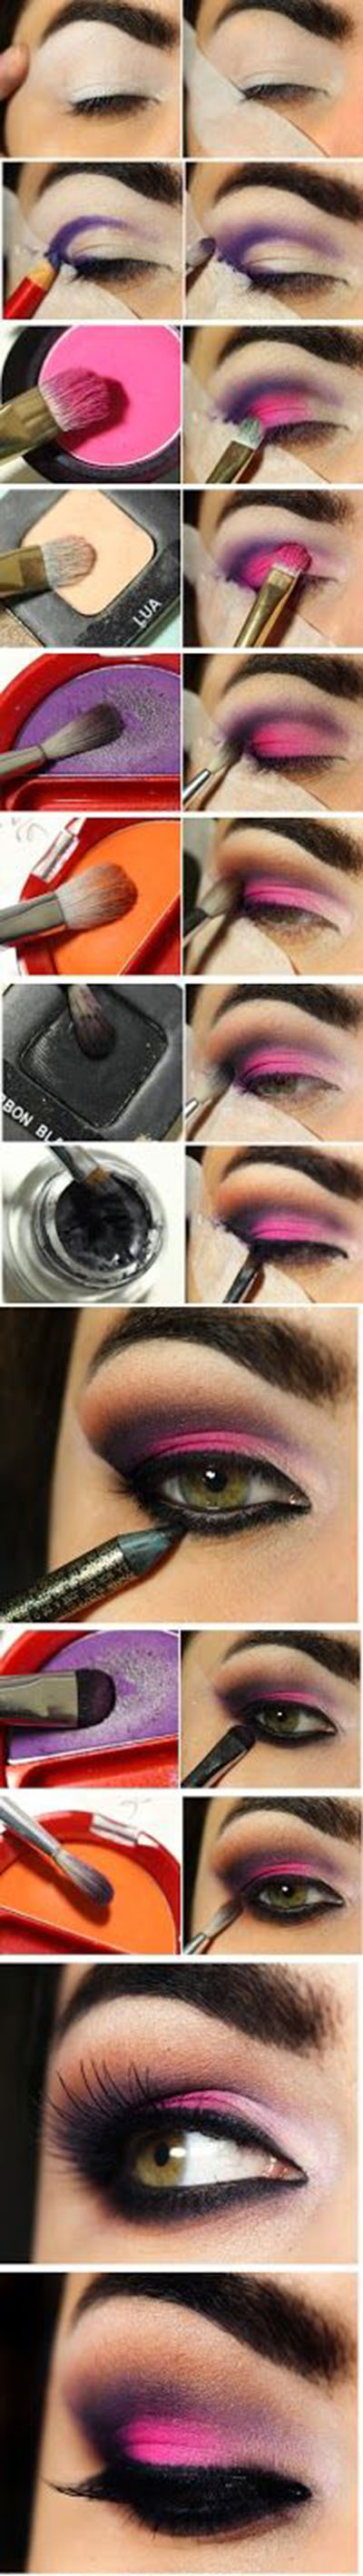 21 Pink and purple smoky eye5103fe3